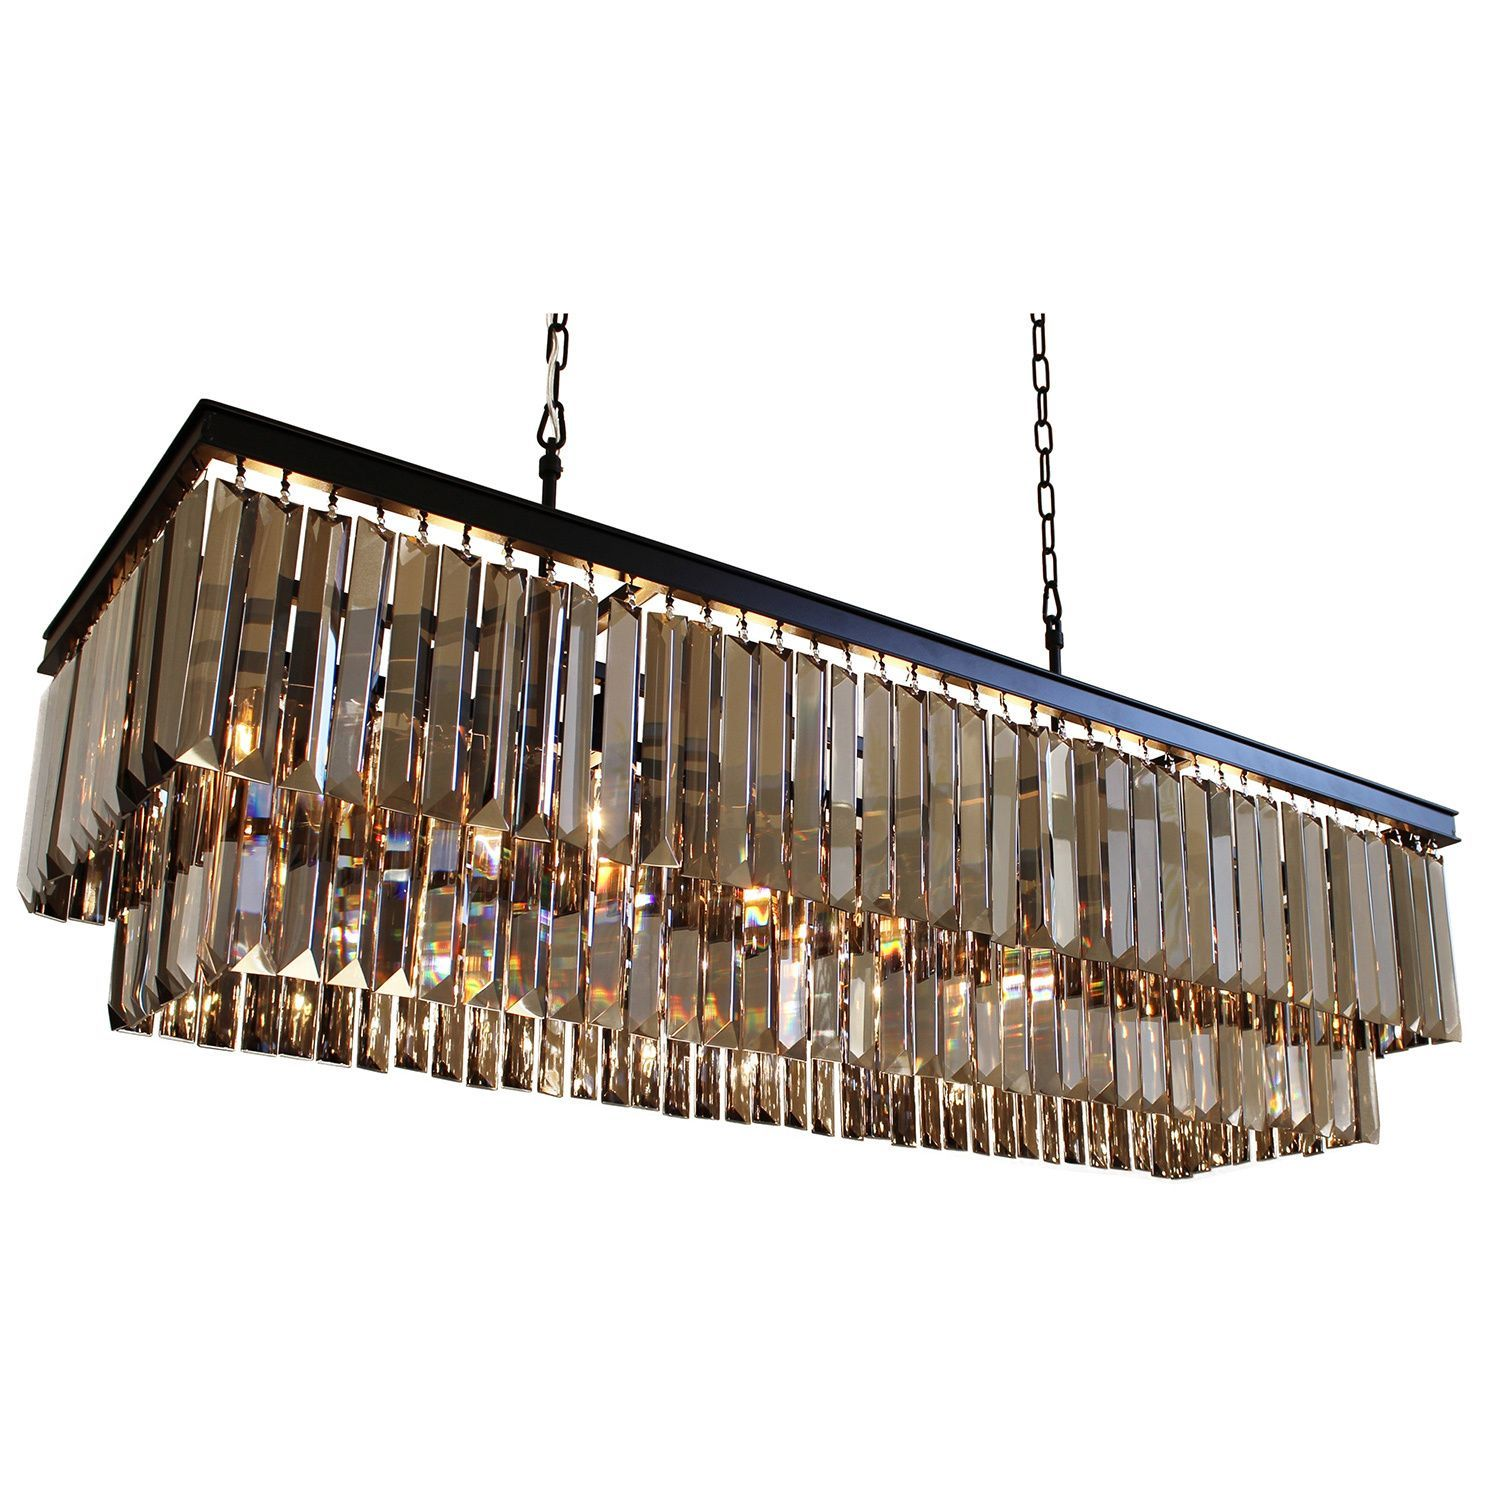 Overstock Com Online Shopping Bedding Furniture Electronics Jewelry Clothing More Rectangular Chandelier Chandelier Ceiling Lights Glass Light Fixture